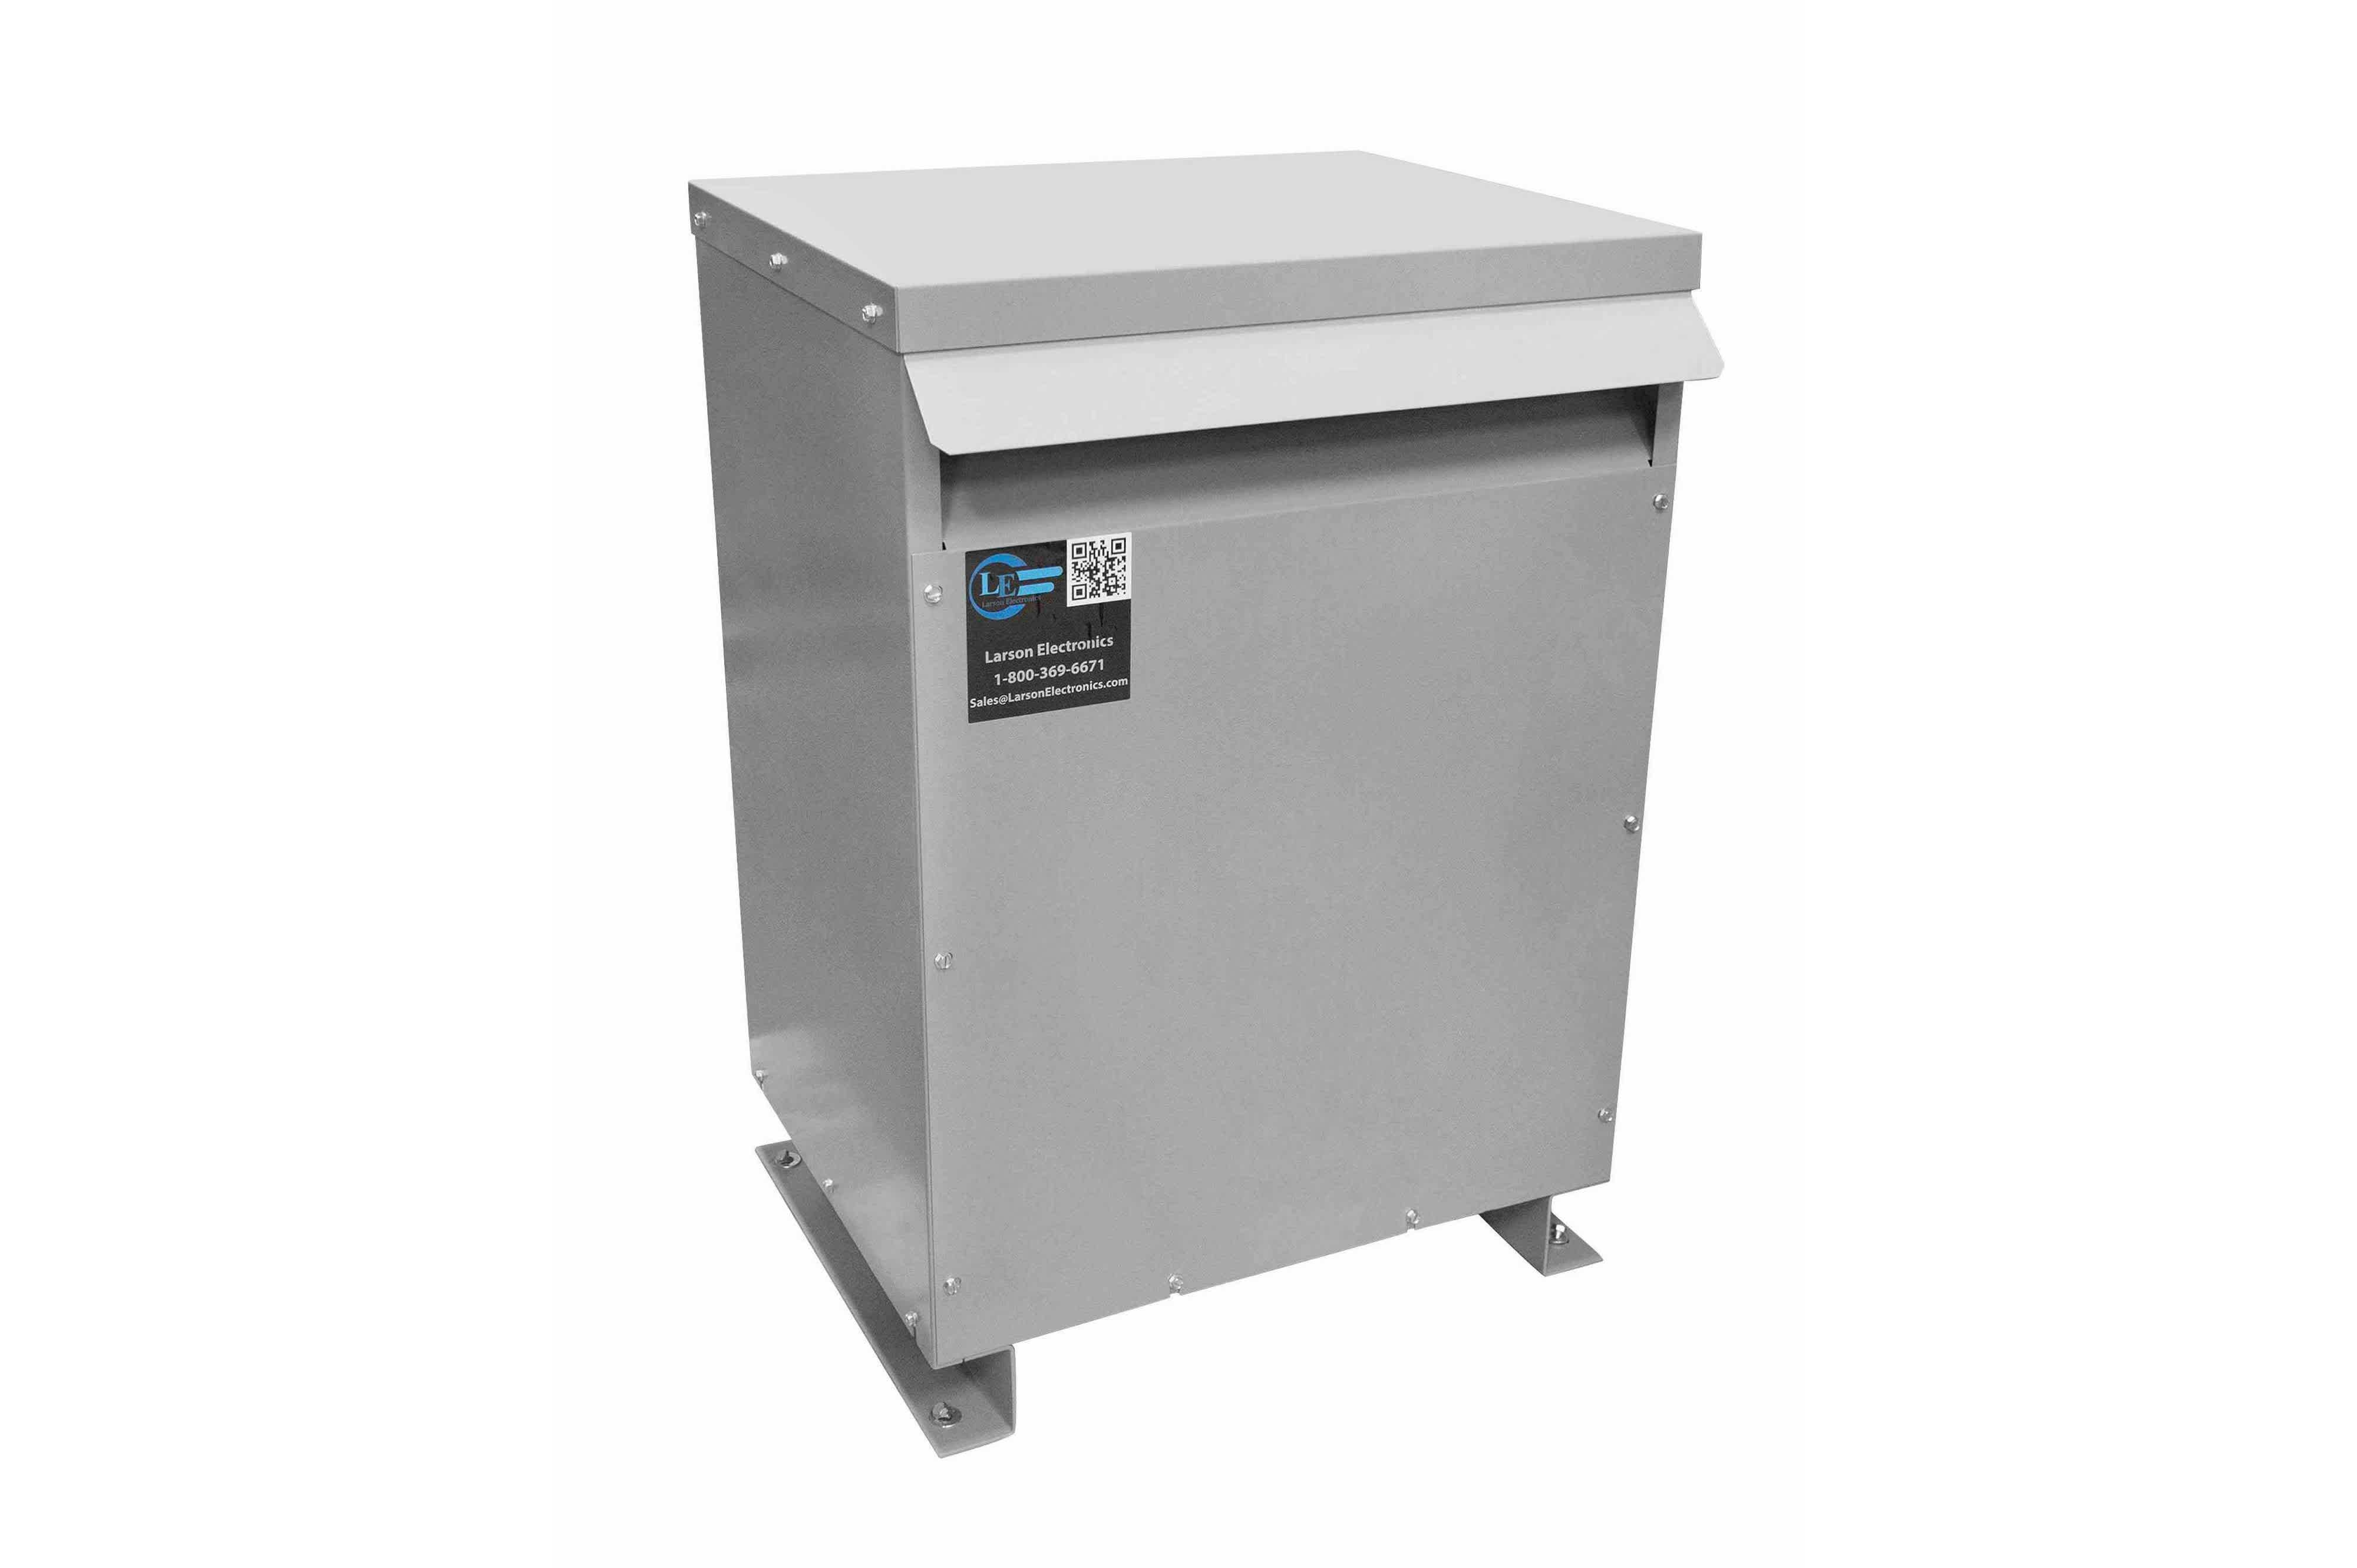 225 kVA 3PH Isolation Transformer, 208V Wye Primary, 480V Delta Secondary, N3R, Ventilated, 60 Hz